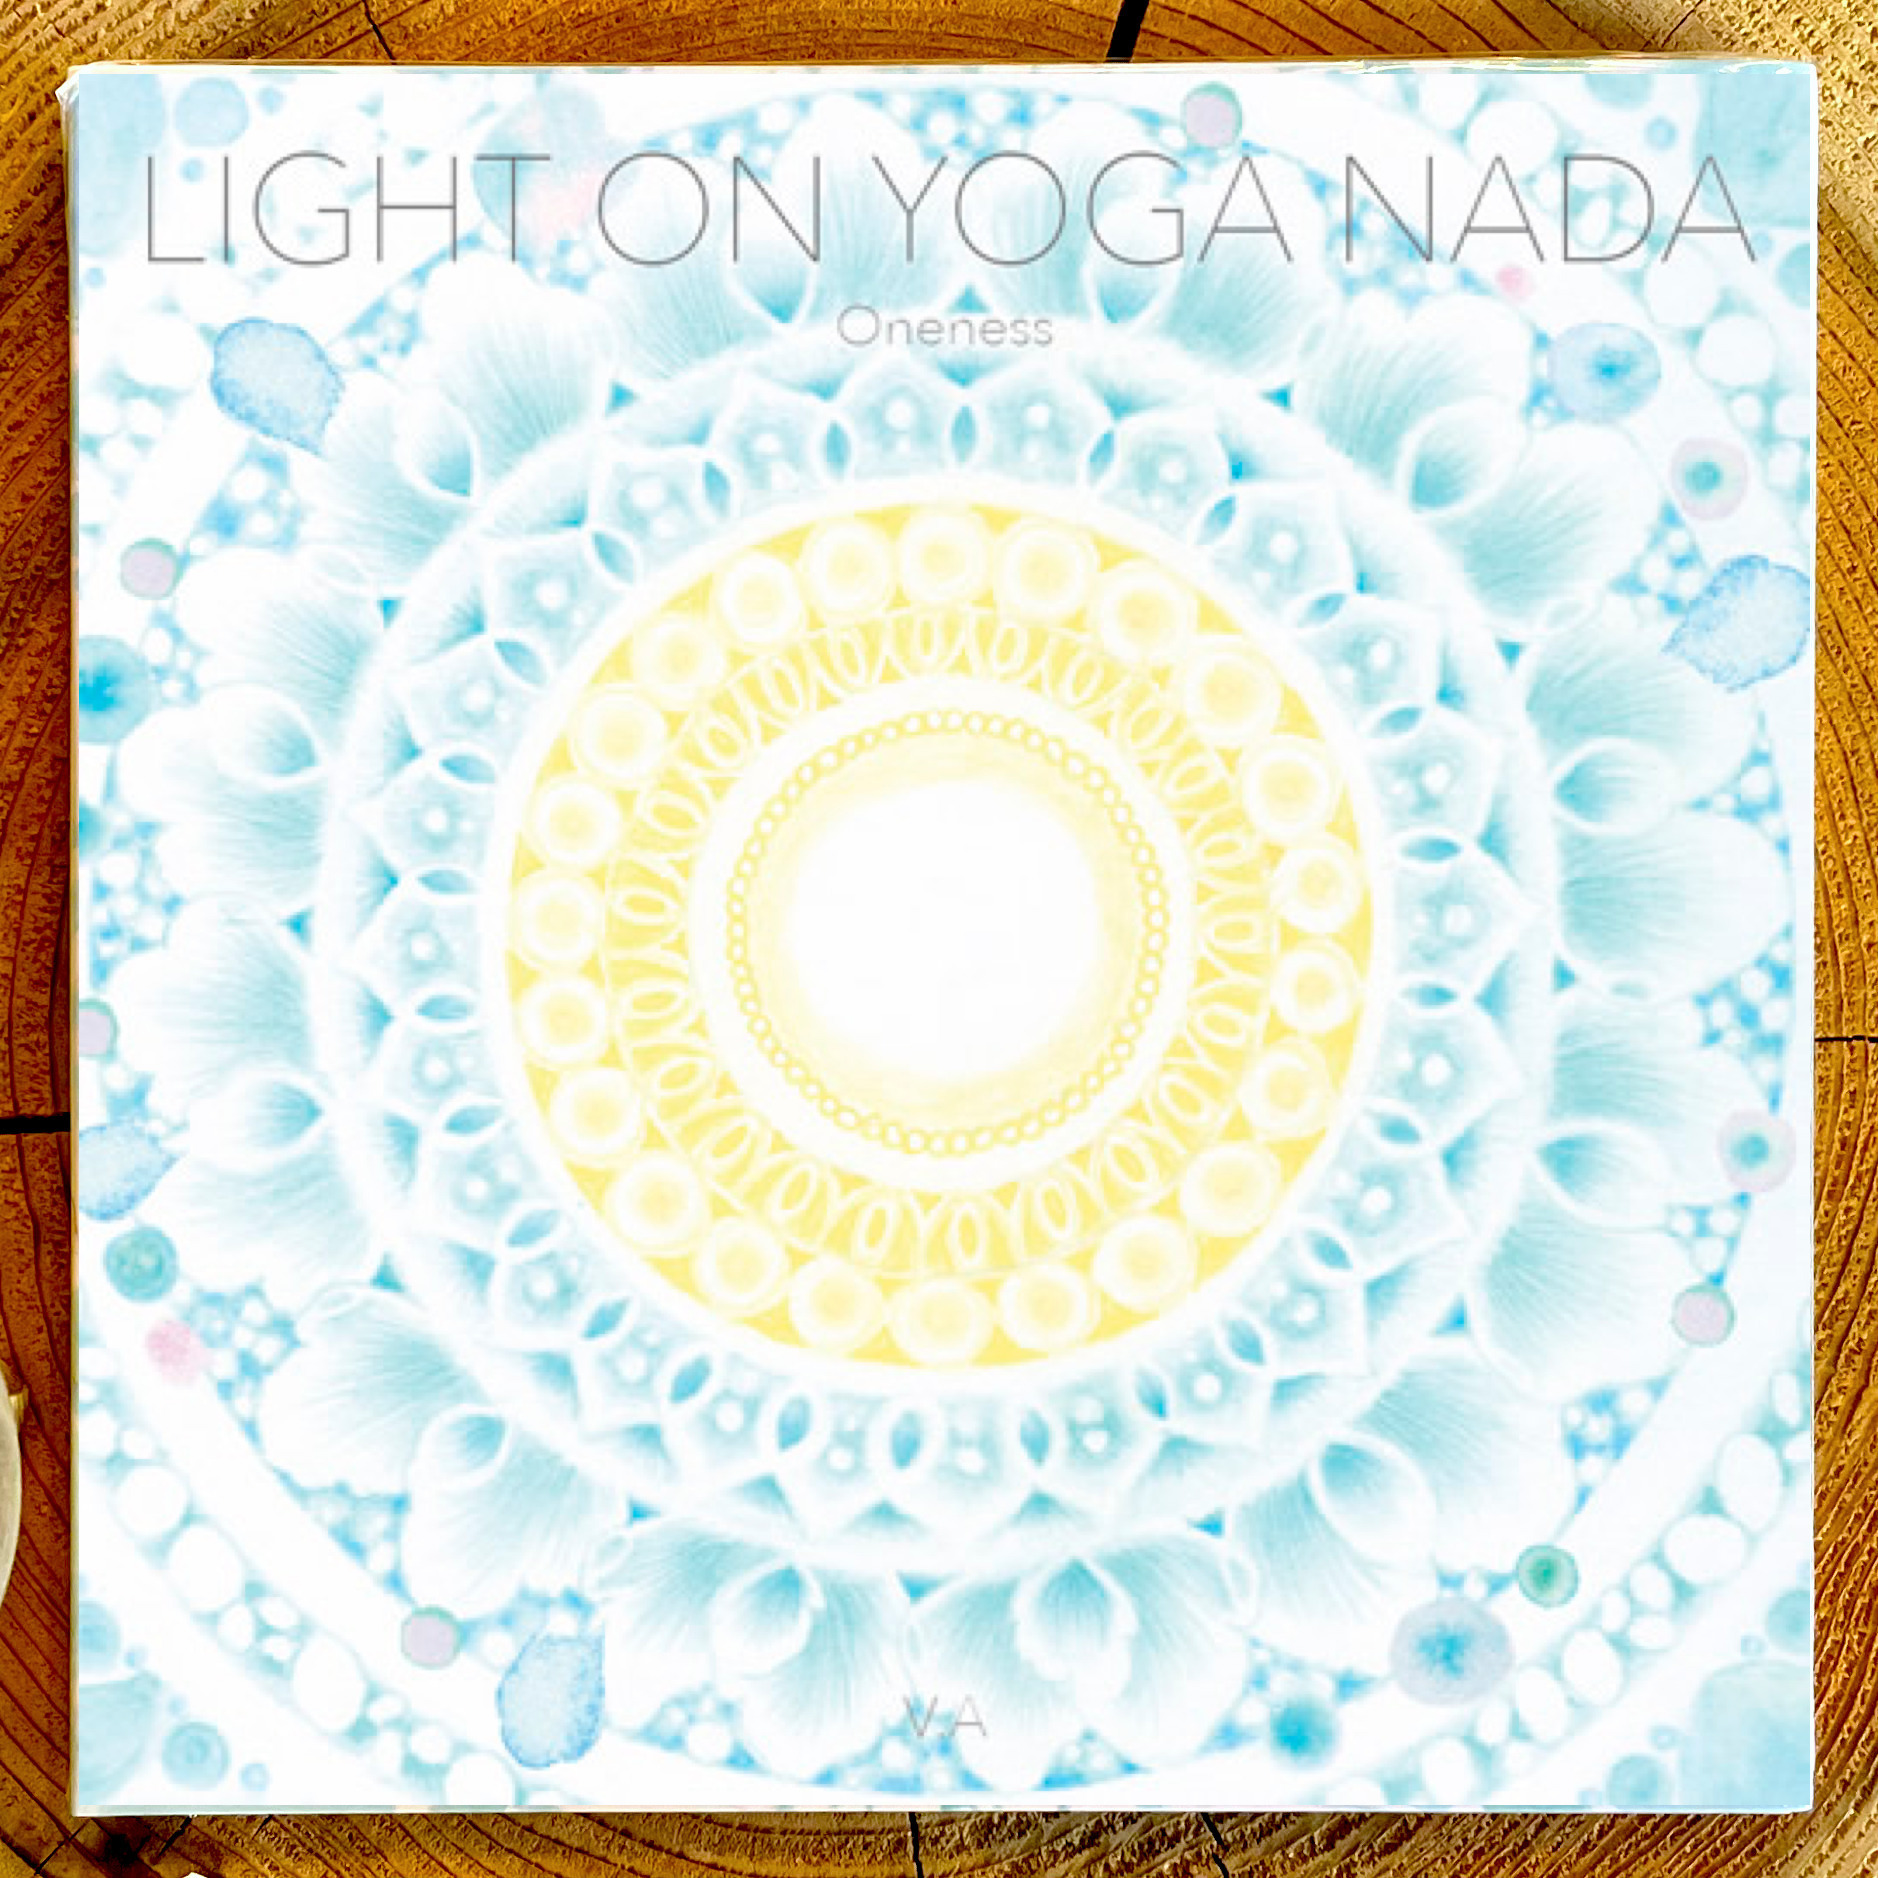 Light on Yoga Nada ~Oneness~ / V.A. (CD)